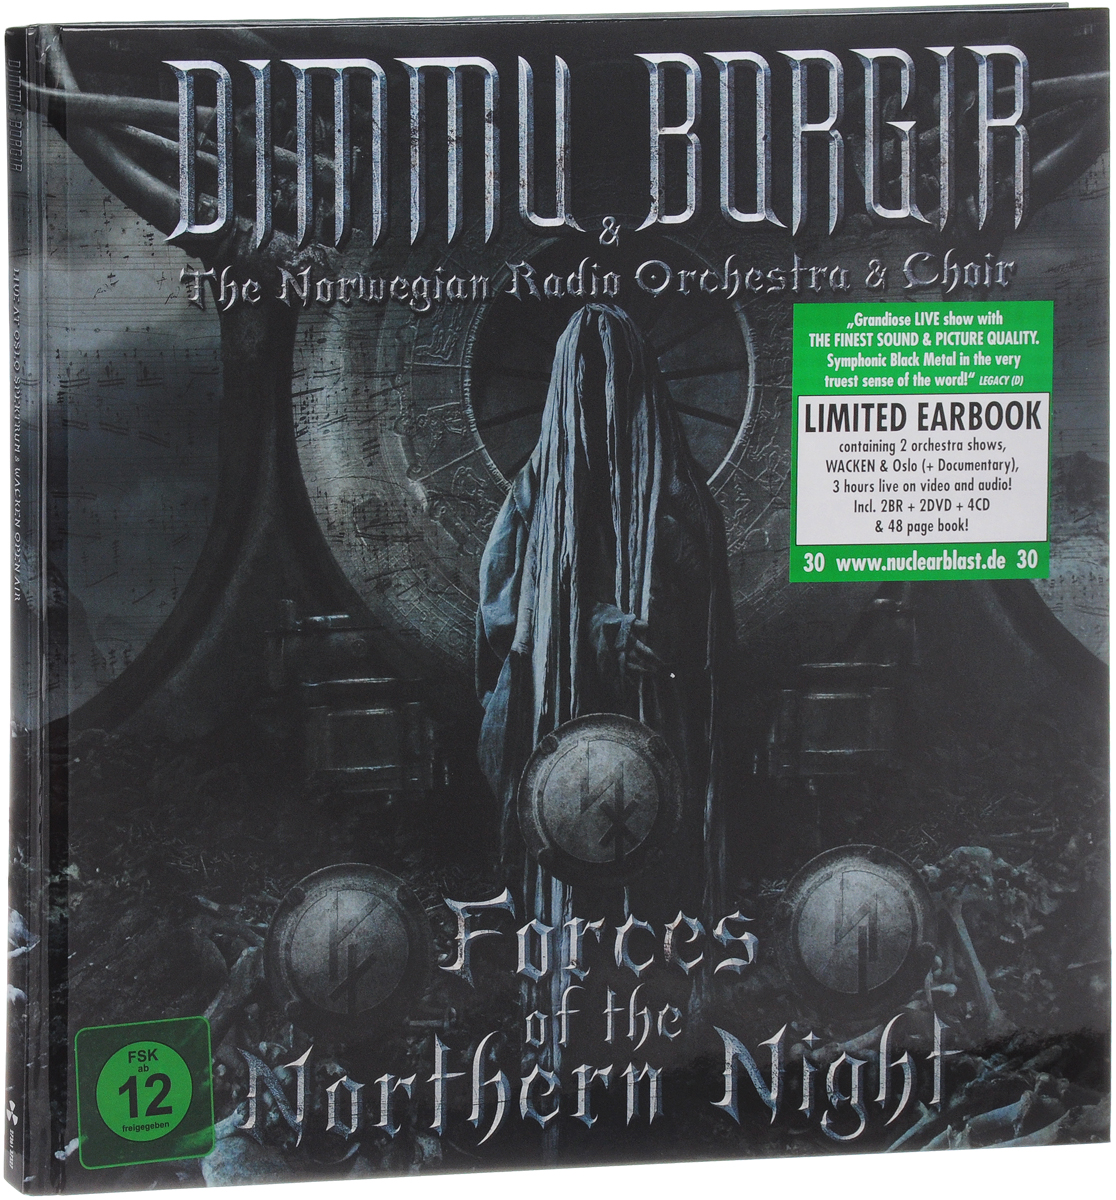 Dimmu Borgir & The Norwegian Radio Orchestra & Choir: Forces Of The Northern Night: Limited Earbook (2 Blu-ray + 2 DVD + 4 CD) цена и фото